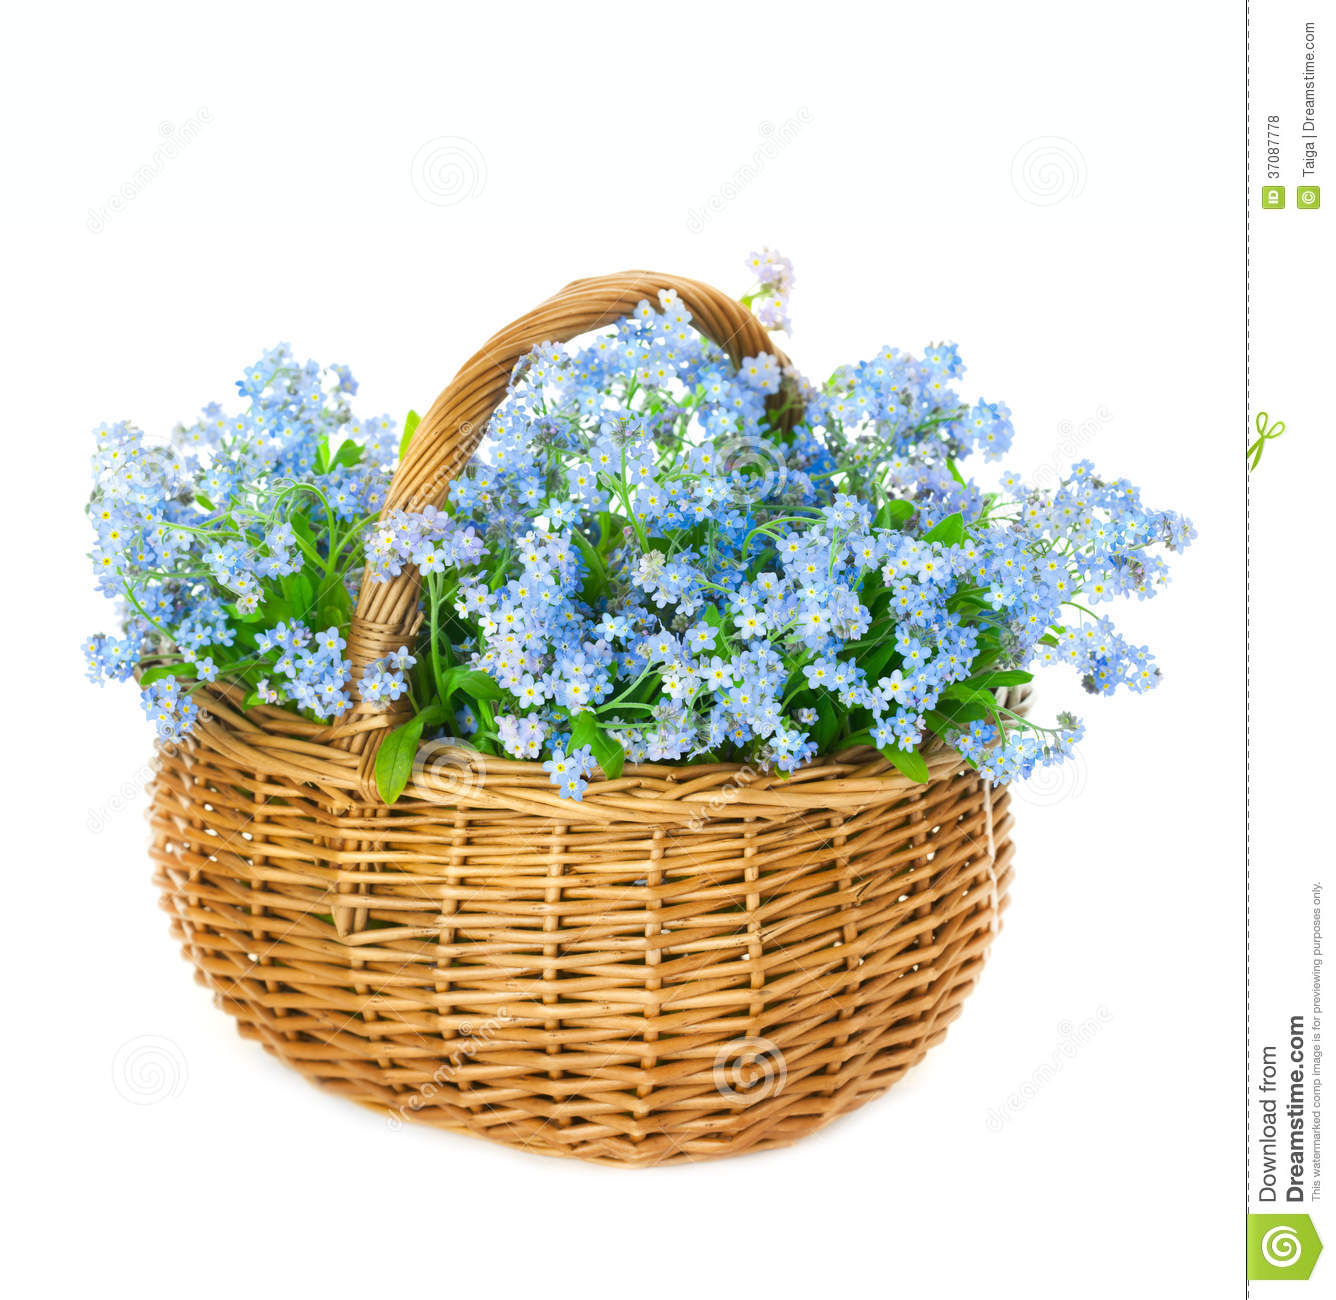 Small Blue Spring Flowers stock photo 545678524 | iStock